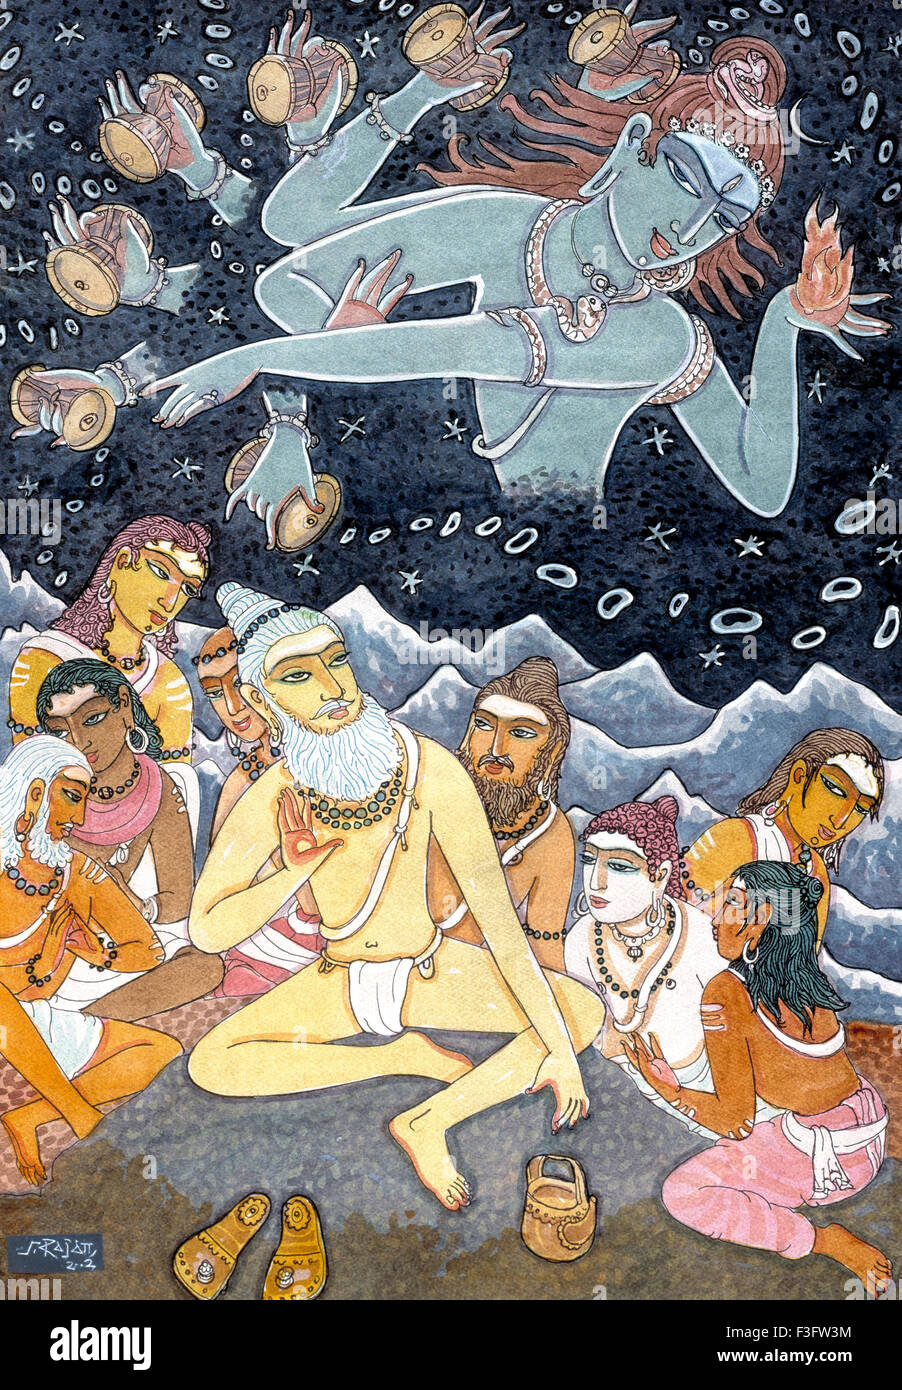 Lord siva blesses nandinatha and his eight disciples ; himalayan academy art - Stock Image